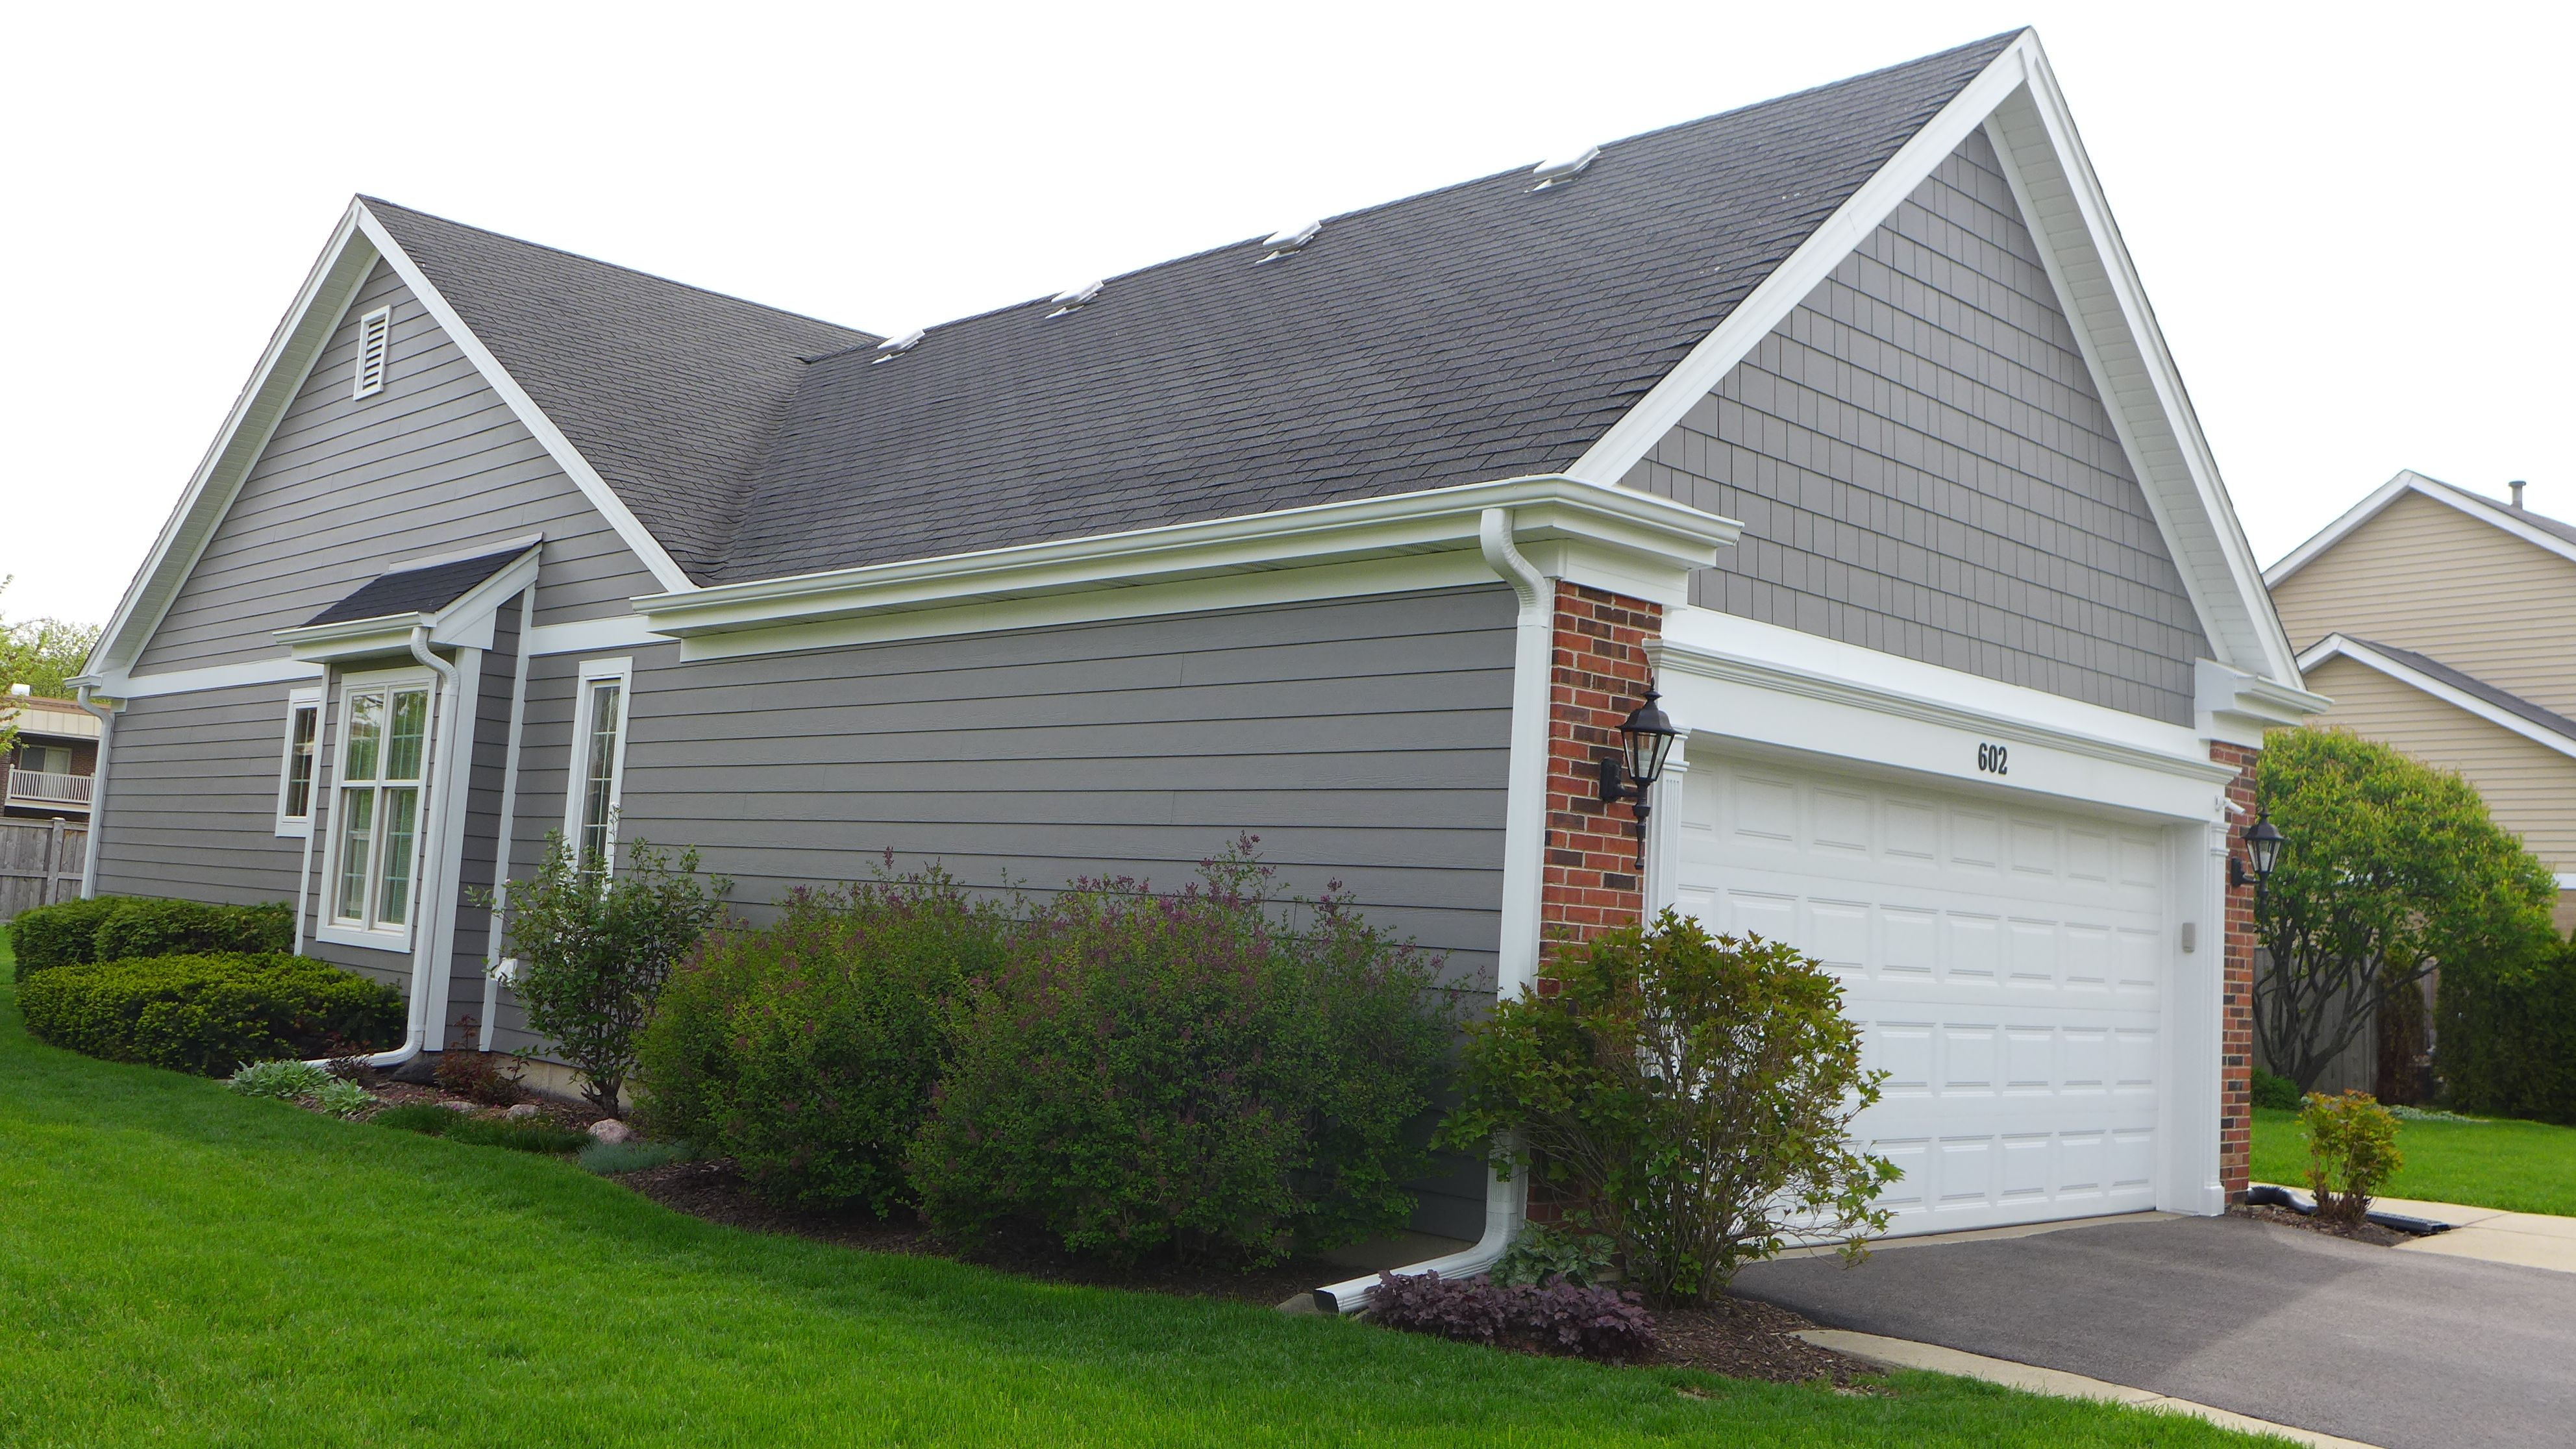 House colors on pinterest paint colors craftsman and james hardie - James Hardie Siding In Aged Pewter